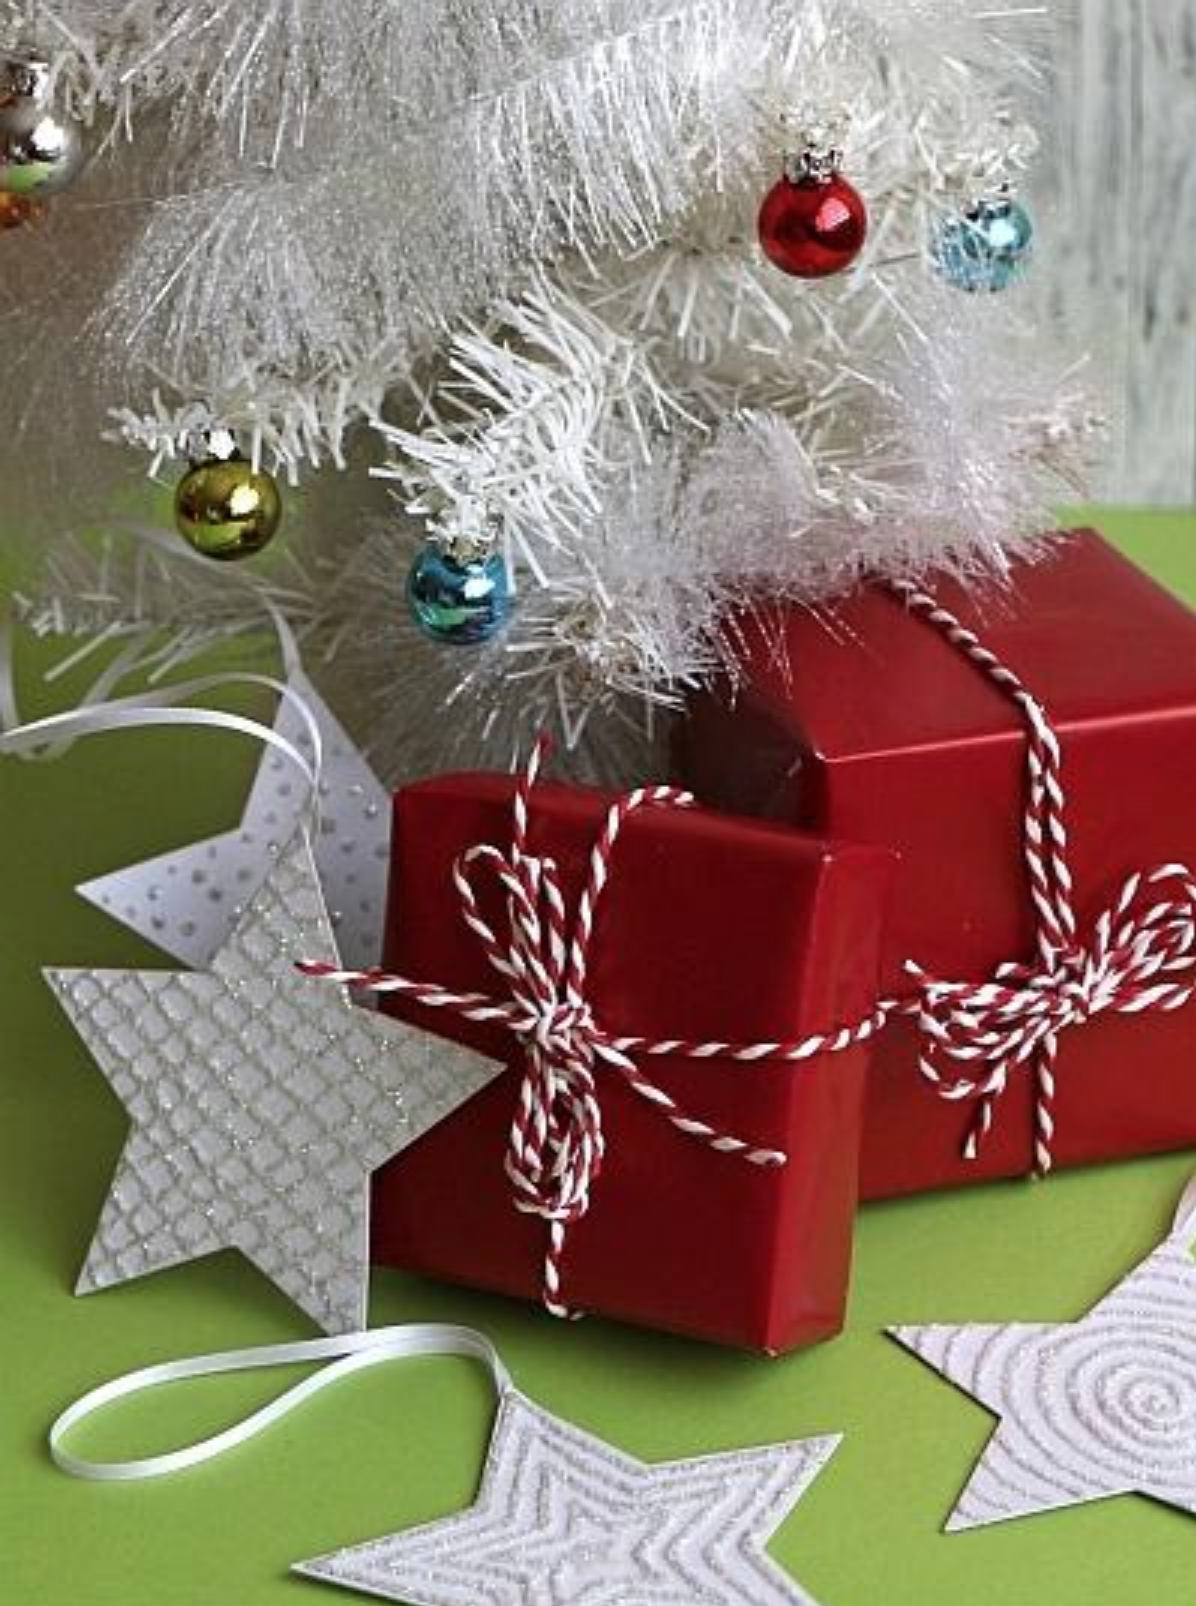 Antioch Library Gift of Giving Week